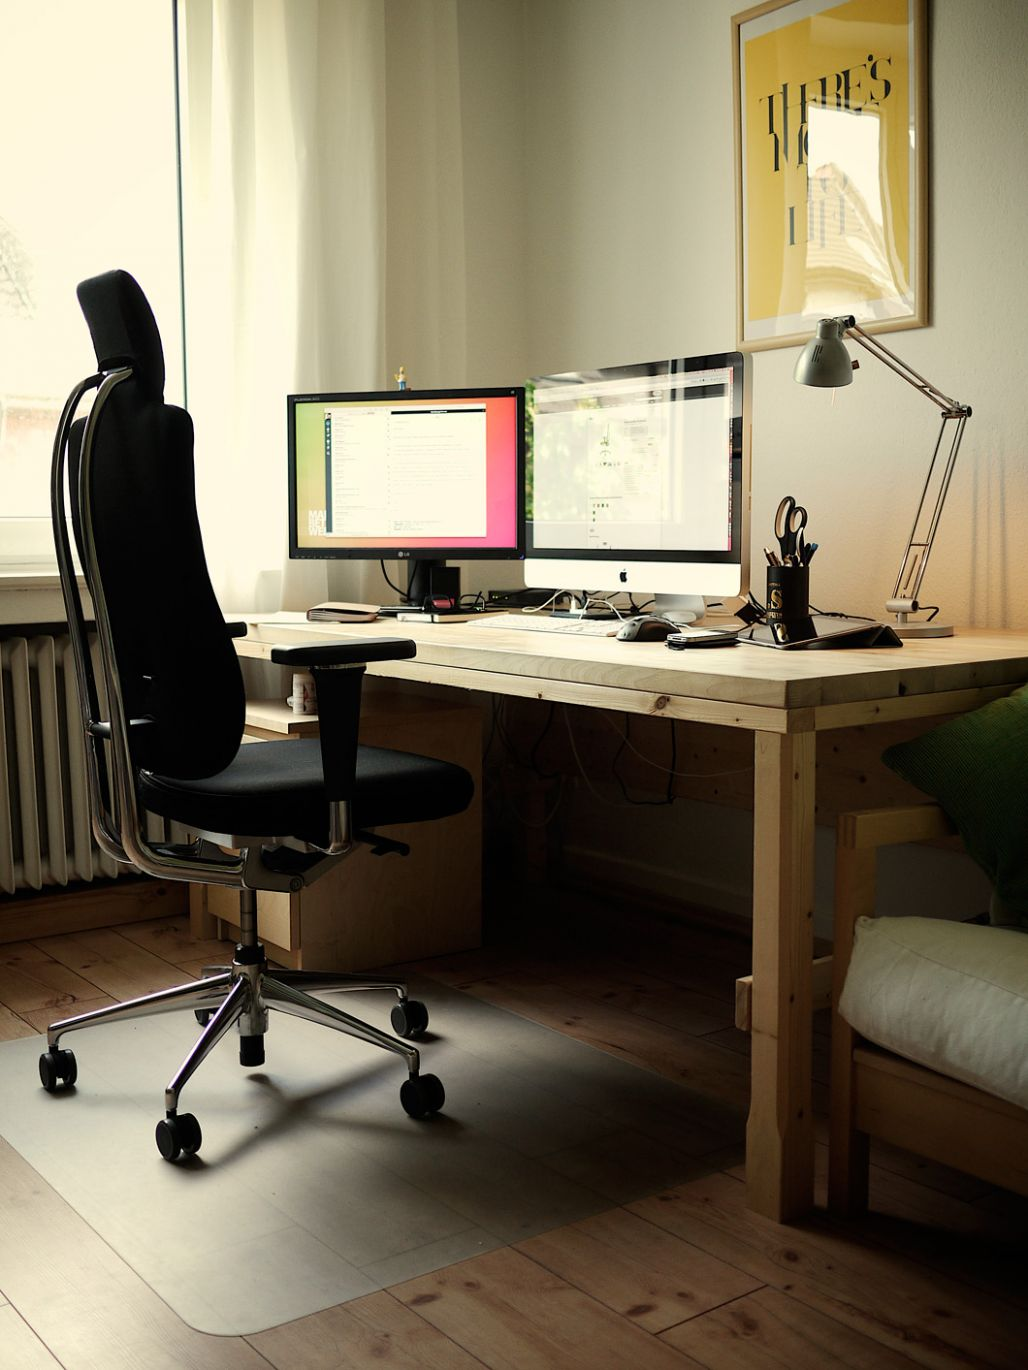 11 Minimal Home Office Design Ideas | Inspirationfeed